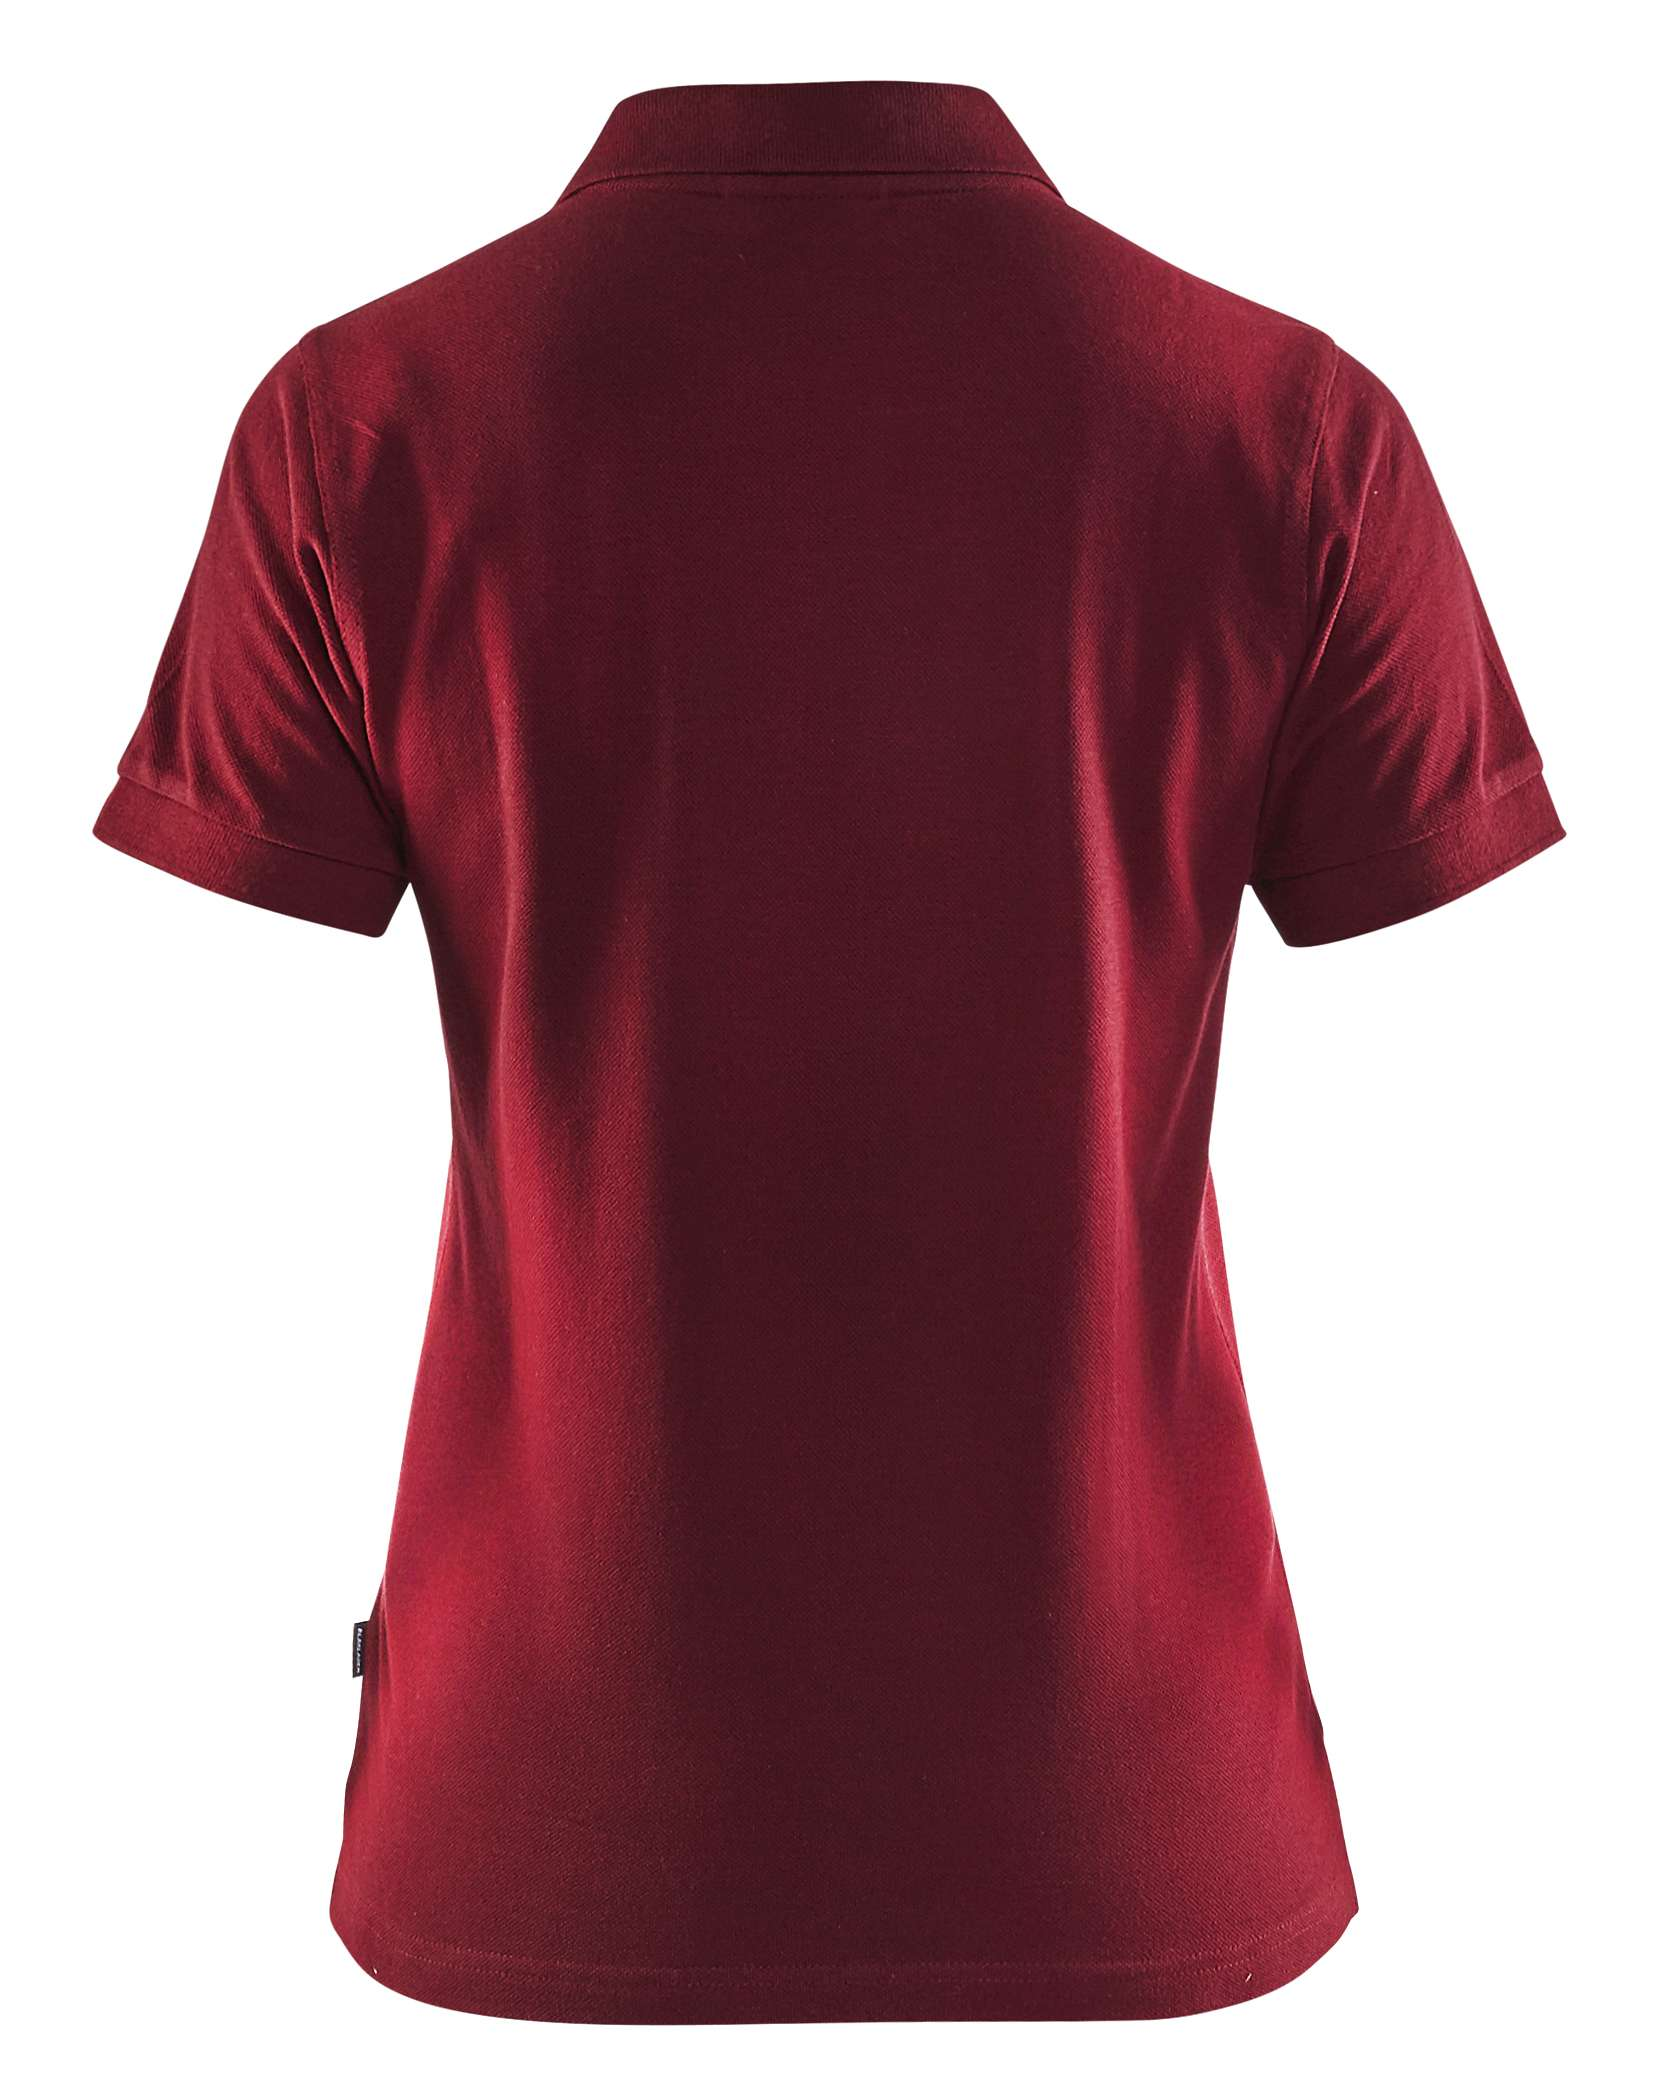 Blaklader Dames polo shirts 33071035 bordeauxrood(5700)